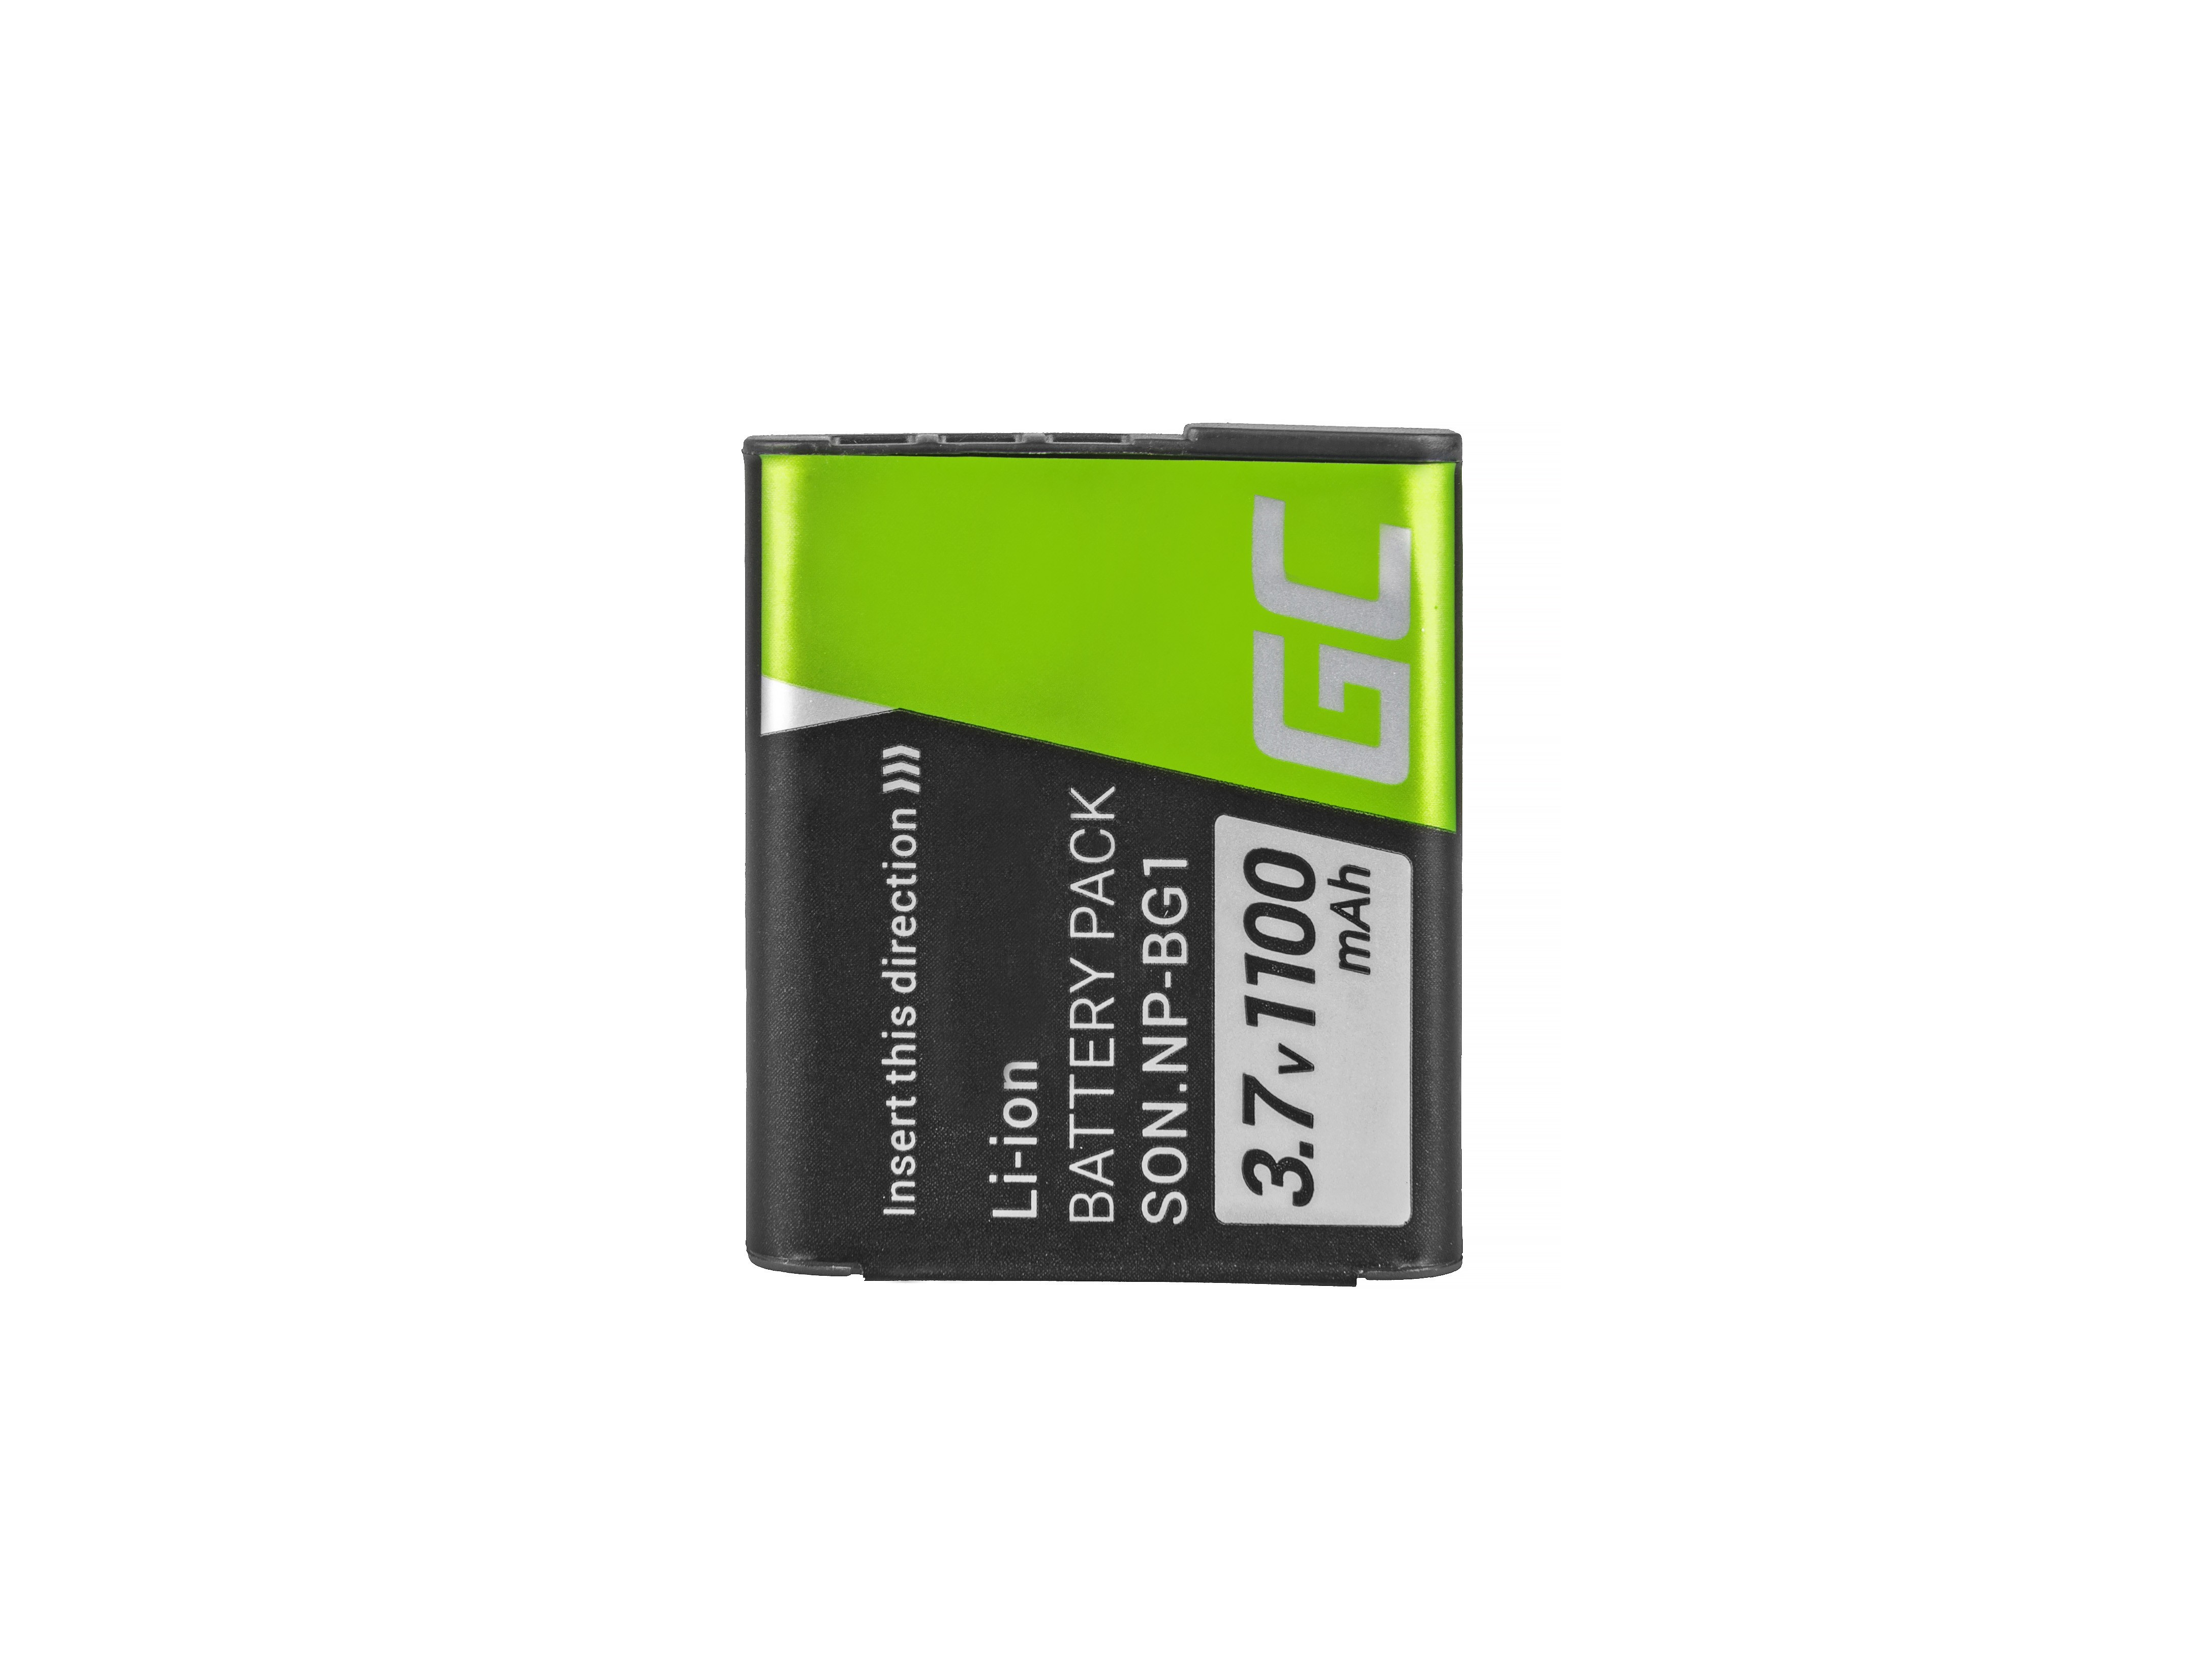 Battery NP-BG1/NP-FG1 and Charger BC-CSG  for Sony DSC H10, H20, H50, HX5, HX10, T50, W50, W70 3.7V 1100mAh